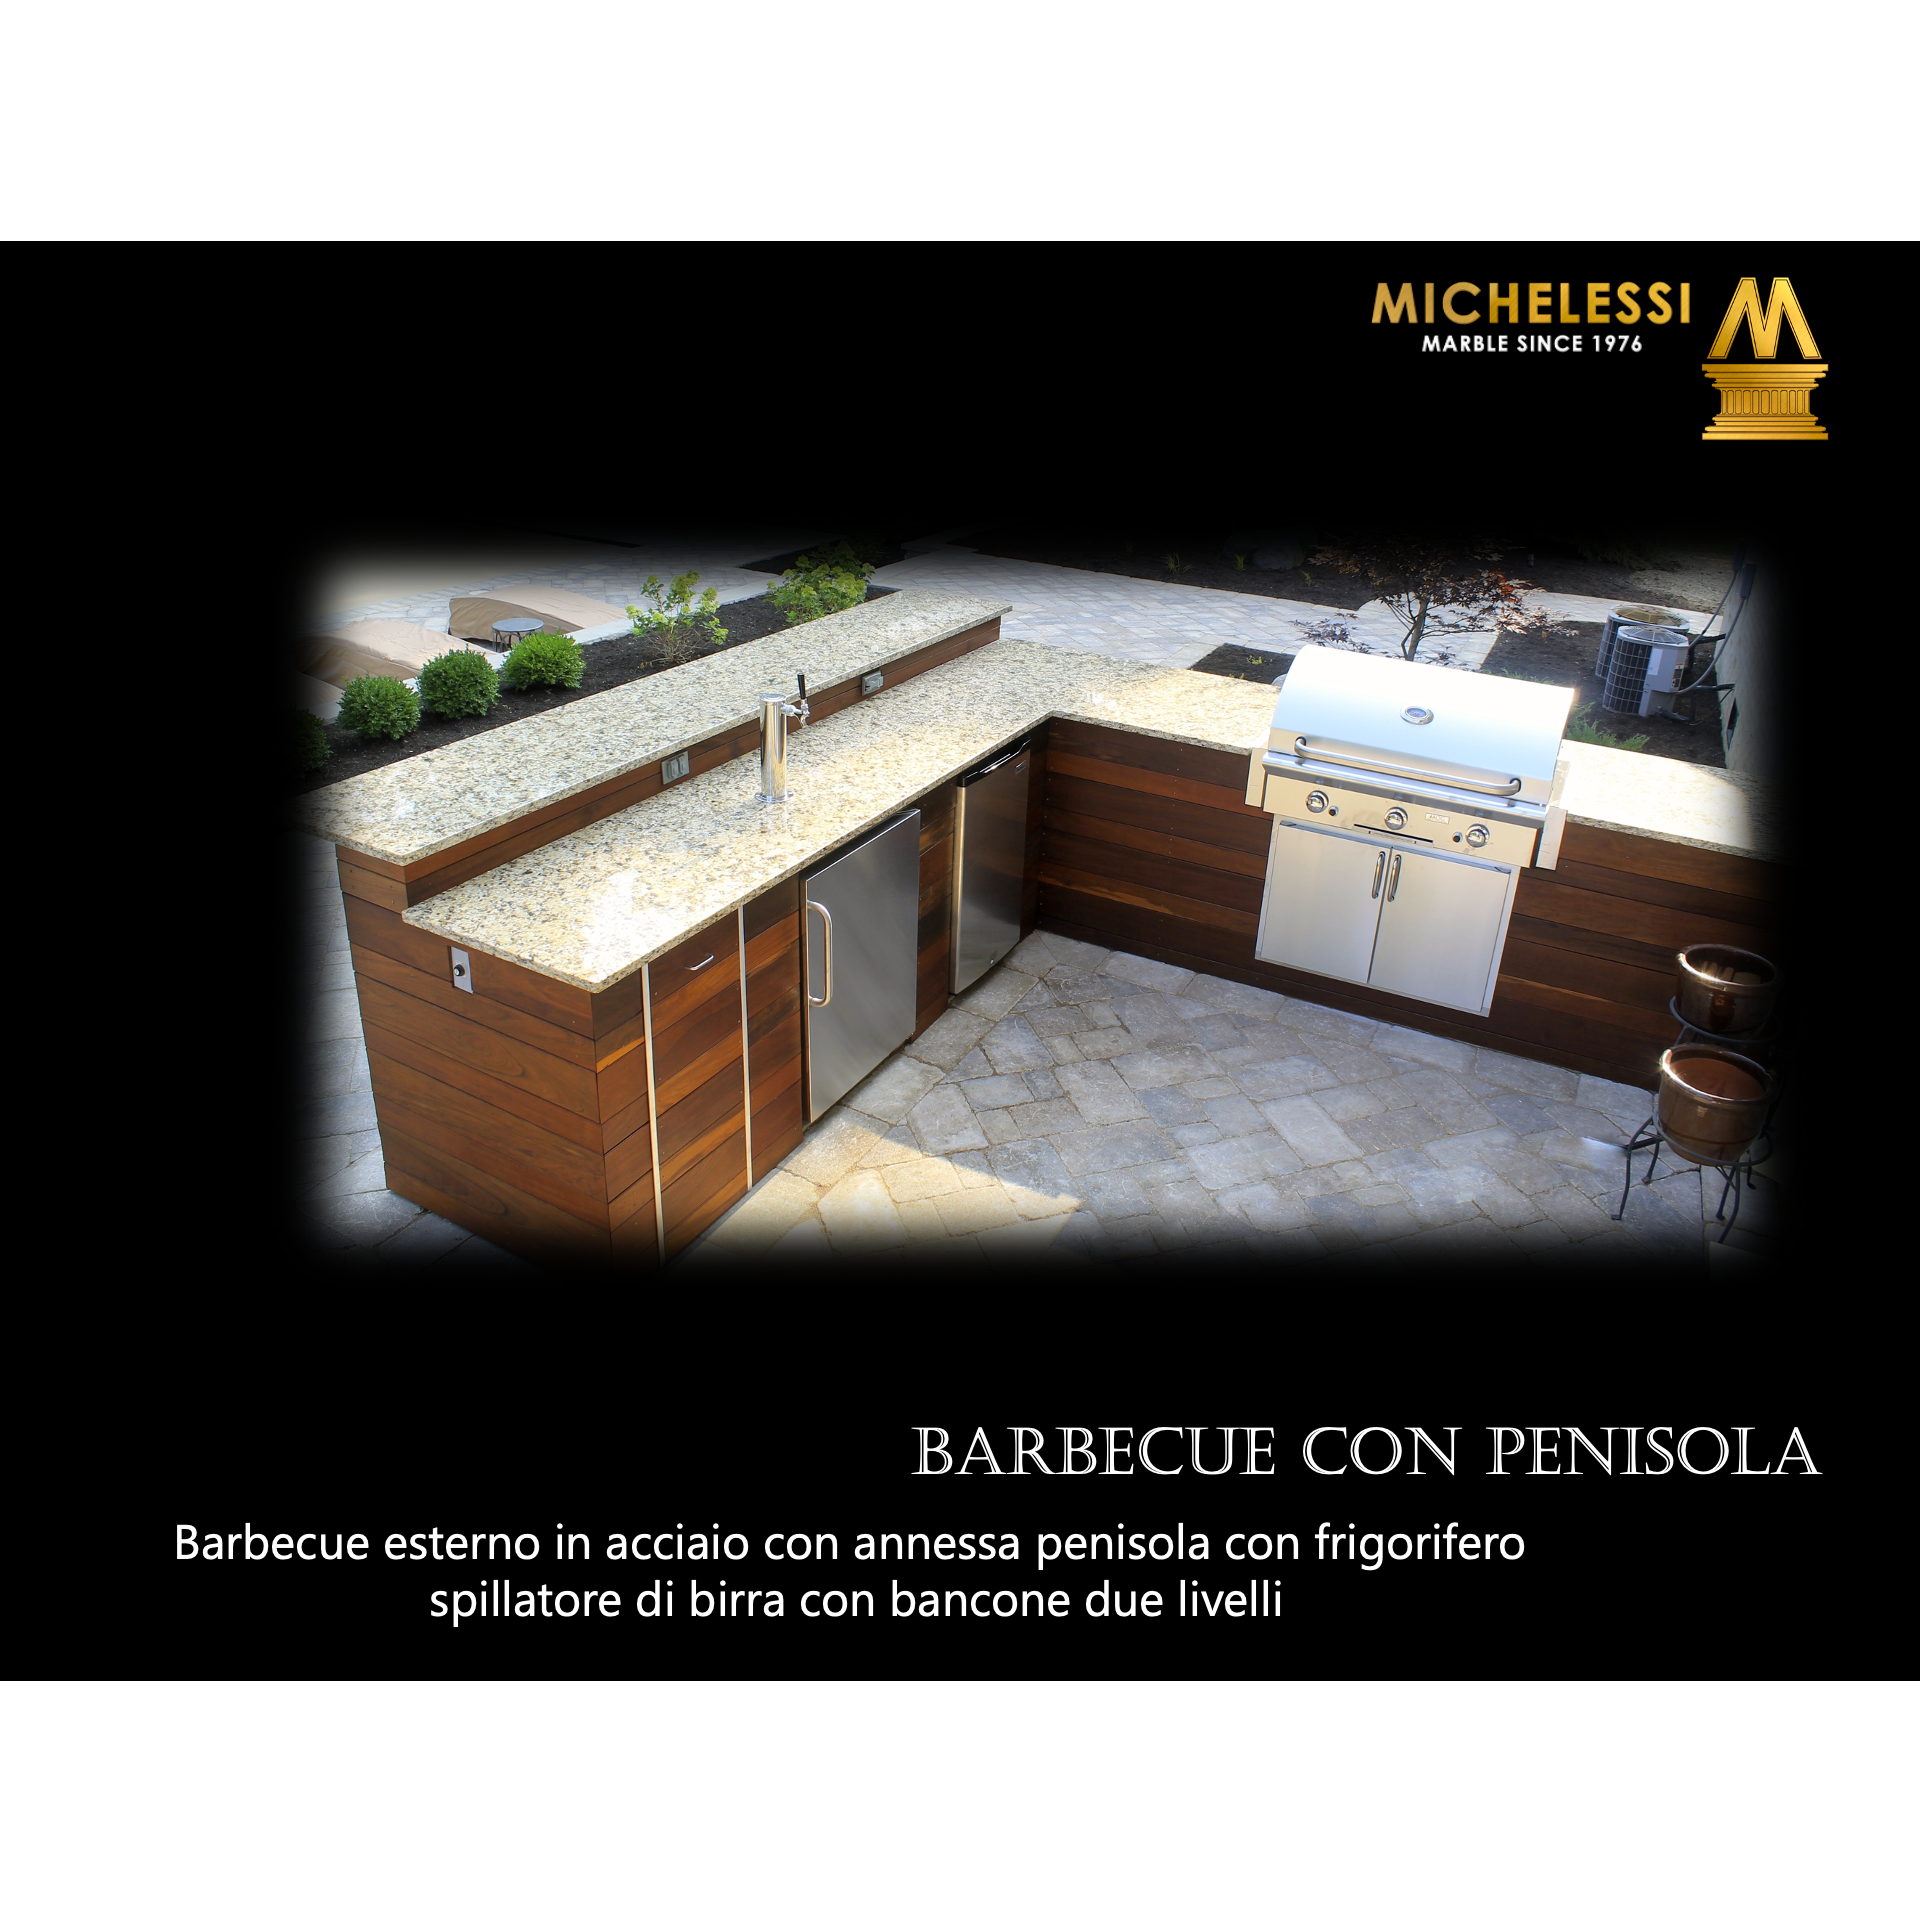 BARBECUE CON PENISOLA